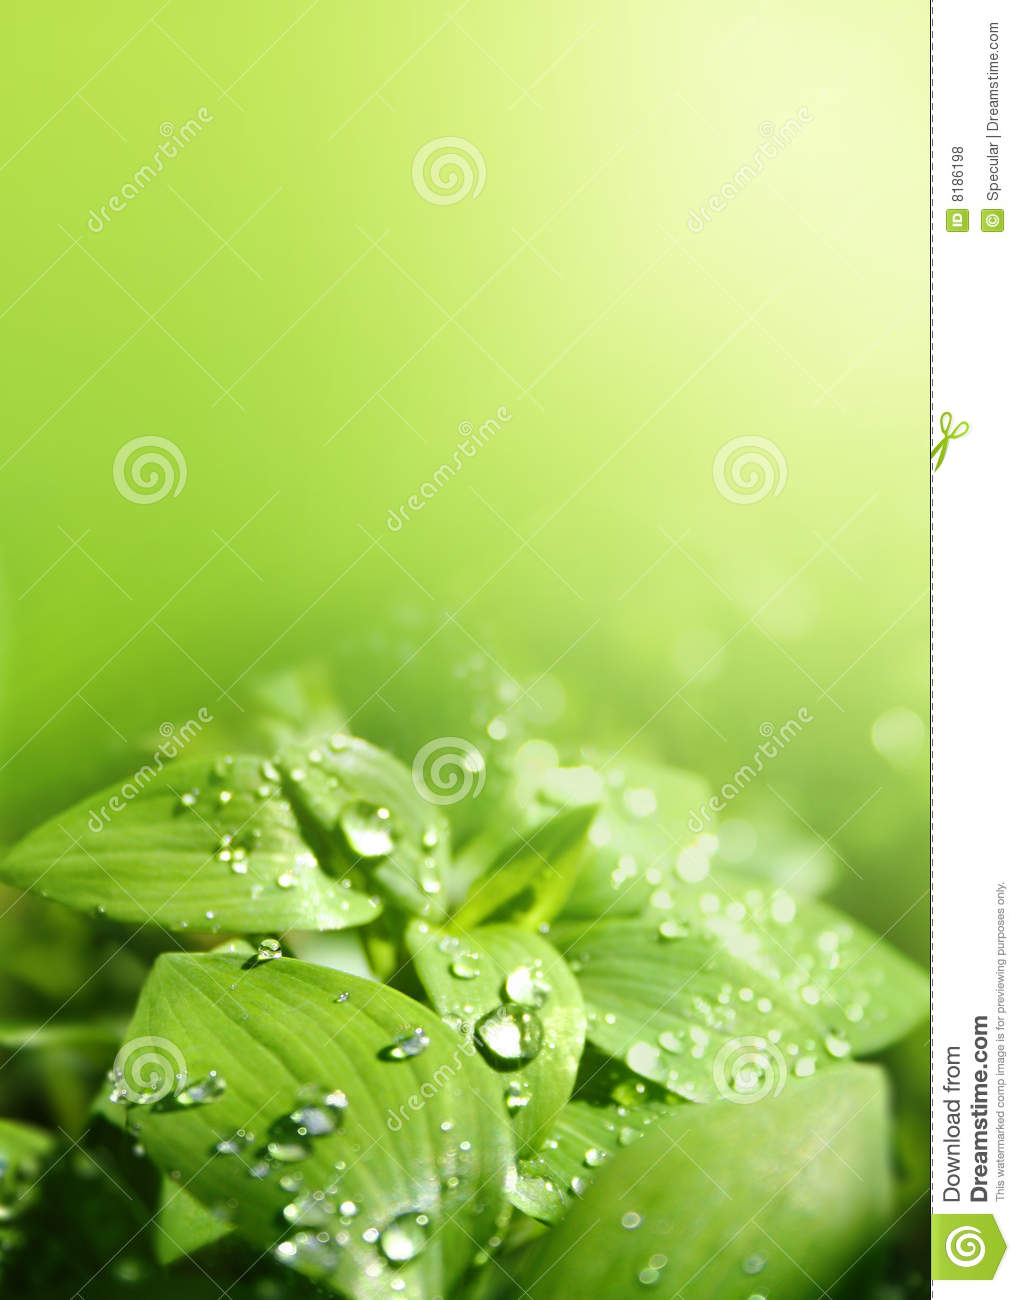 Leaves In A Sunshower Royalty Free Stock Photos  Image 8186198 # Sunshower Id_061250